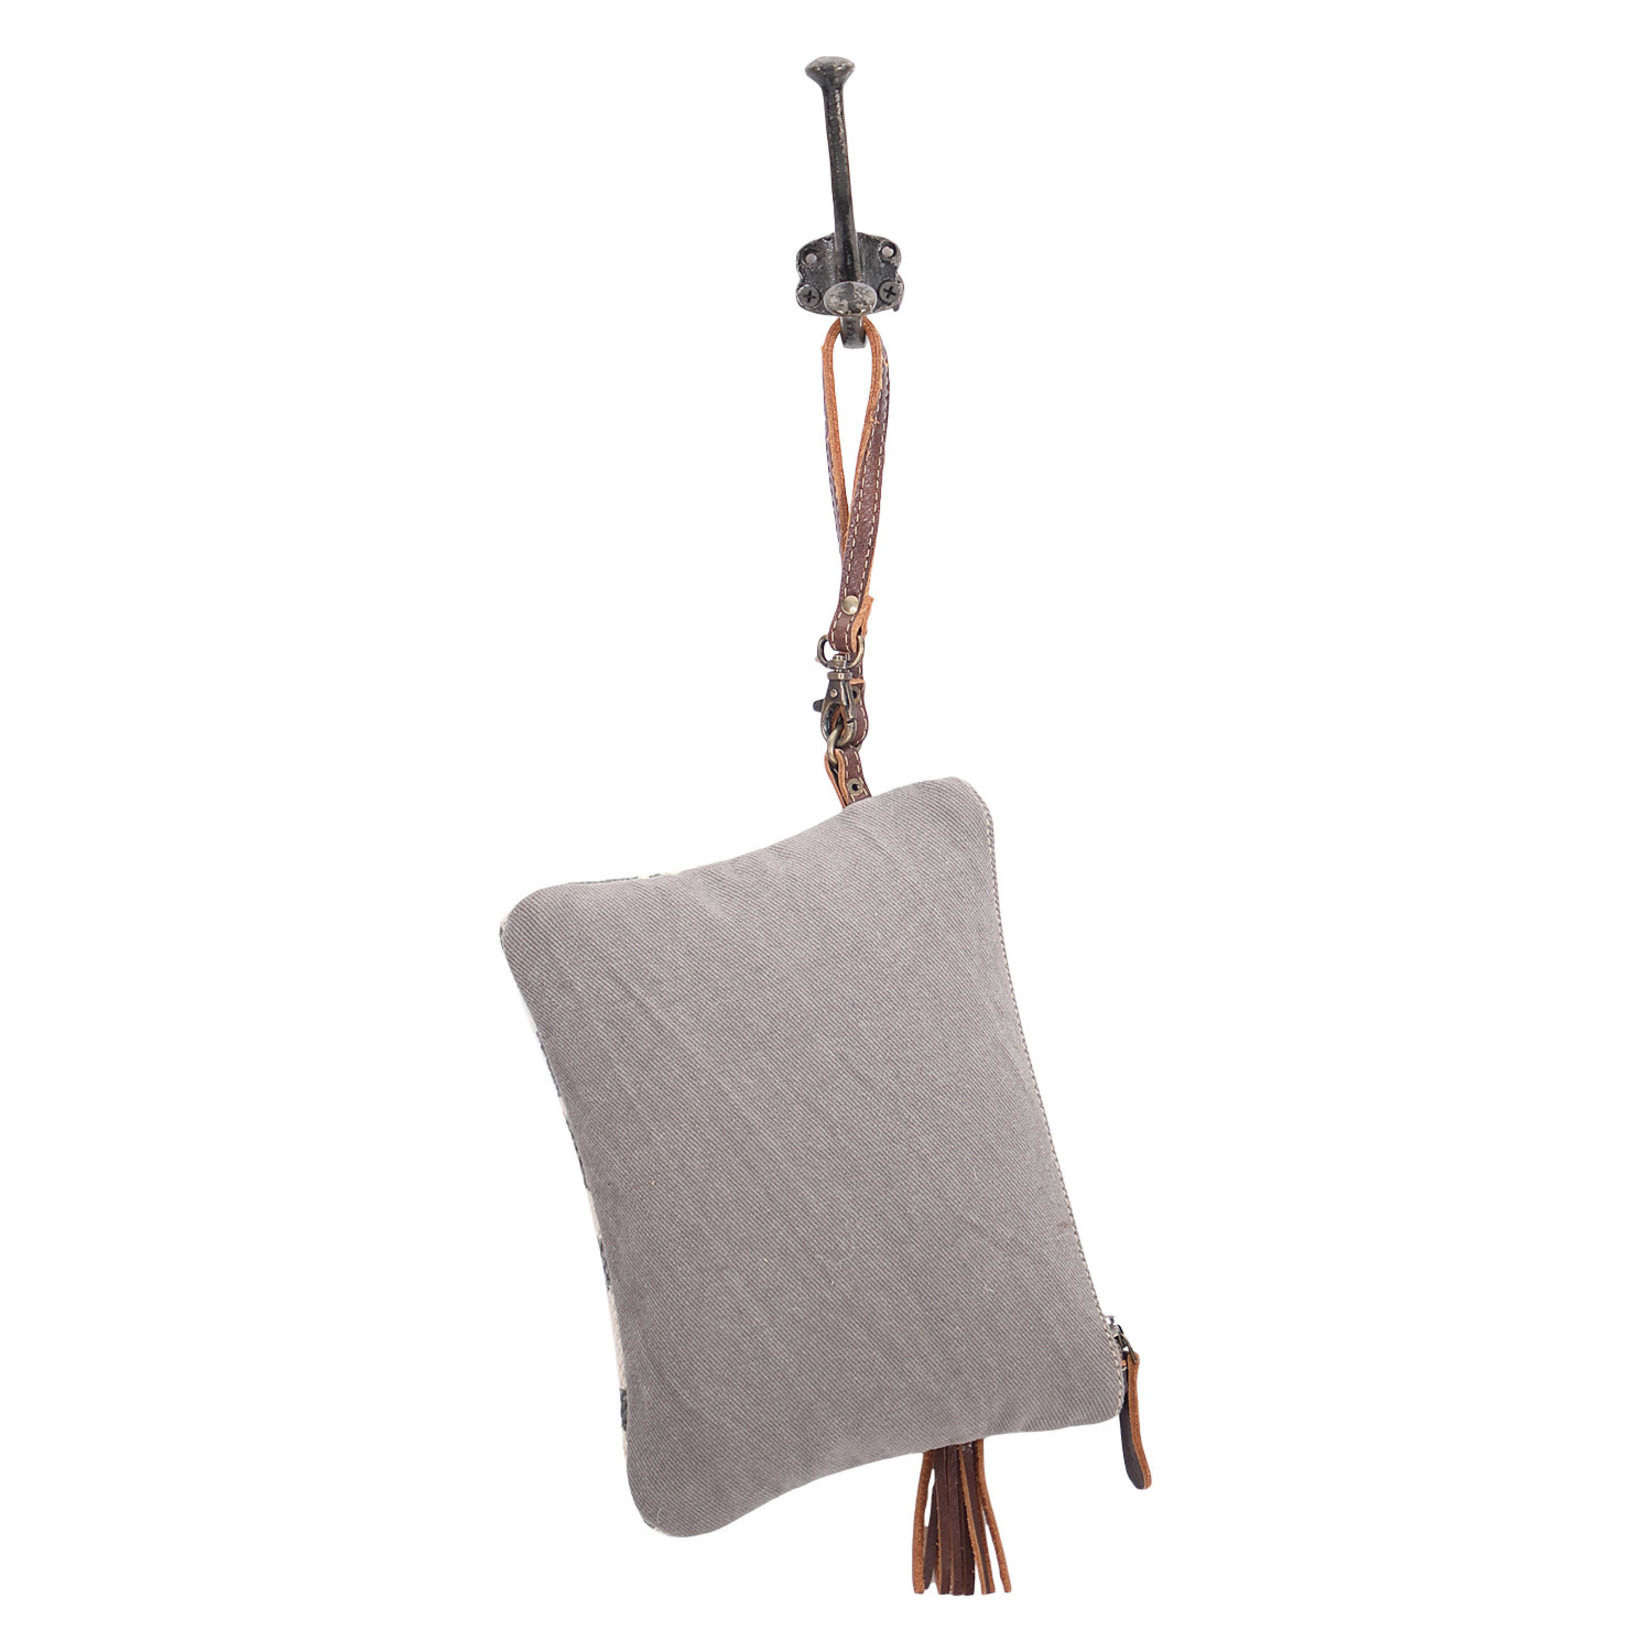 Myra Bags S-1600 Distressed Pouch Wristlet